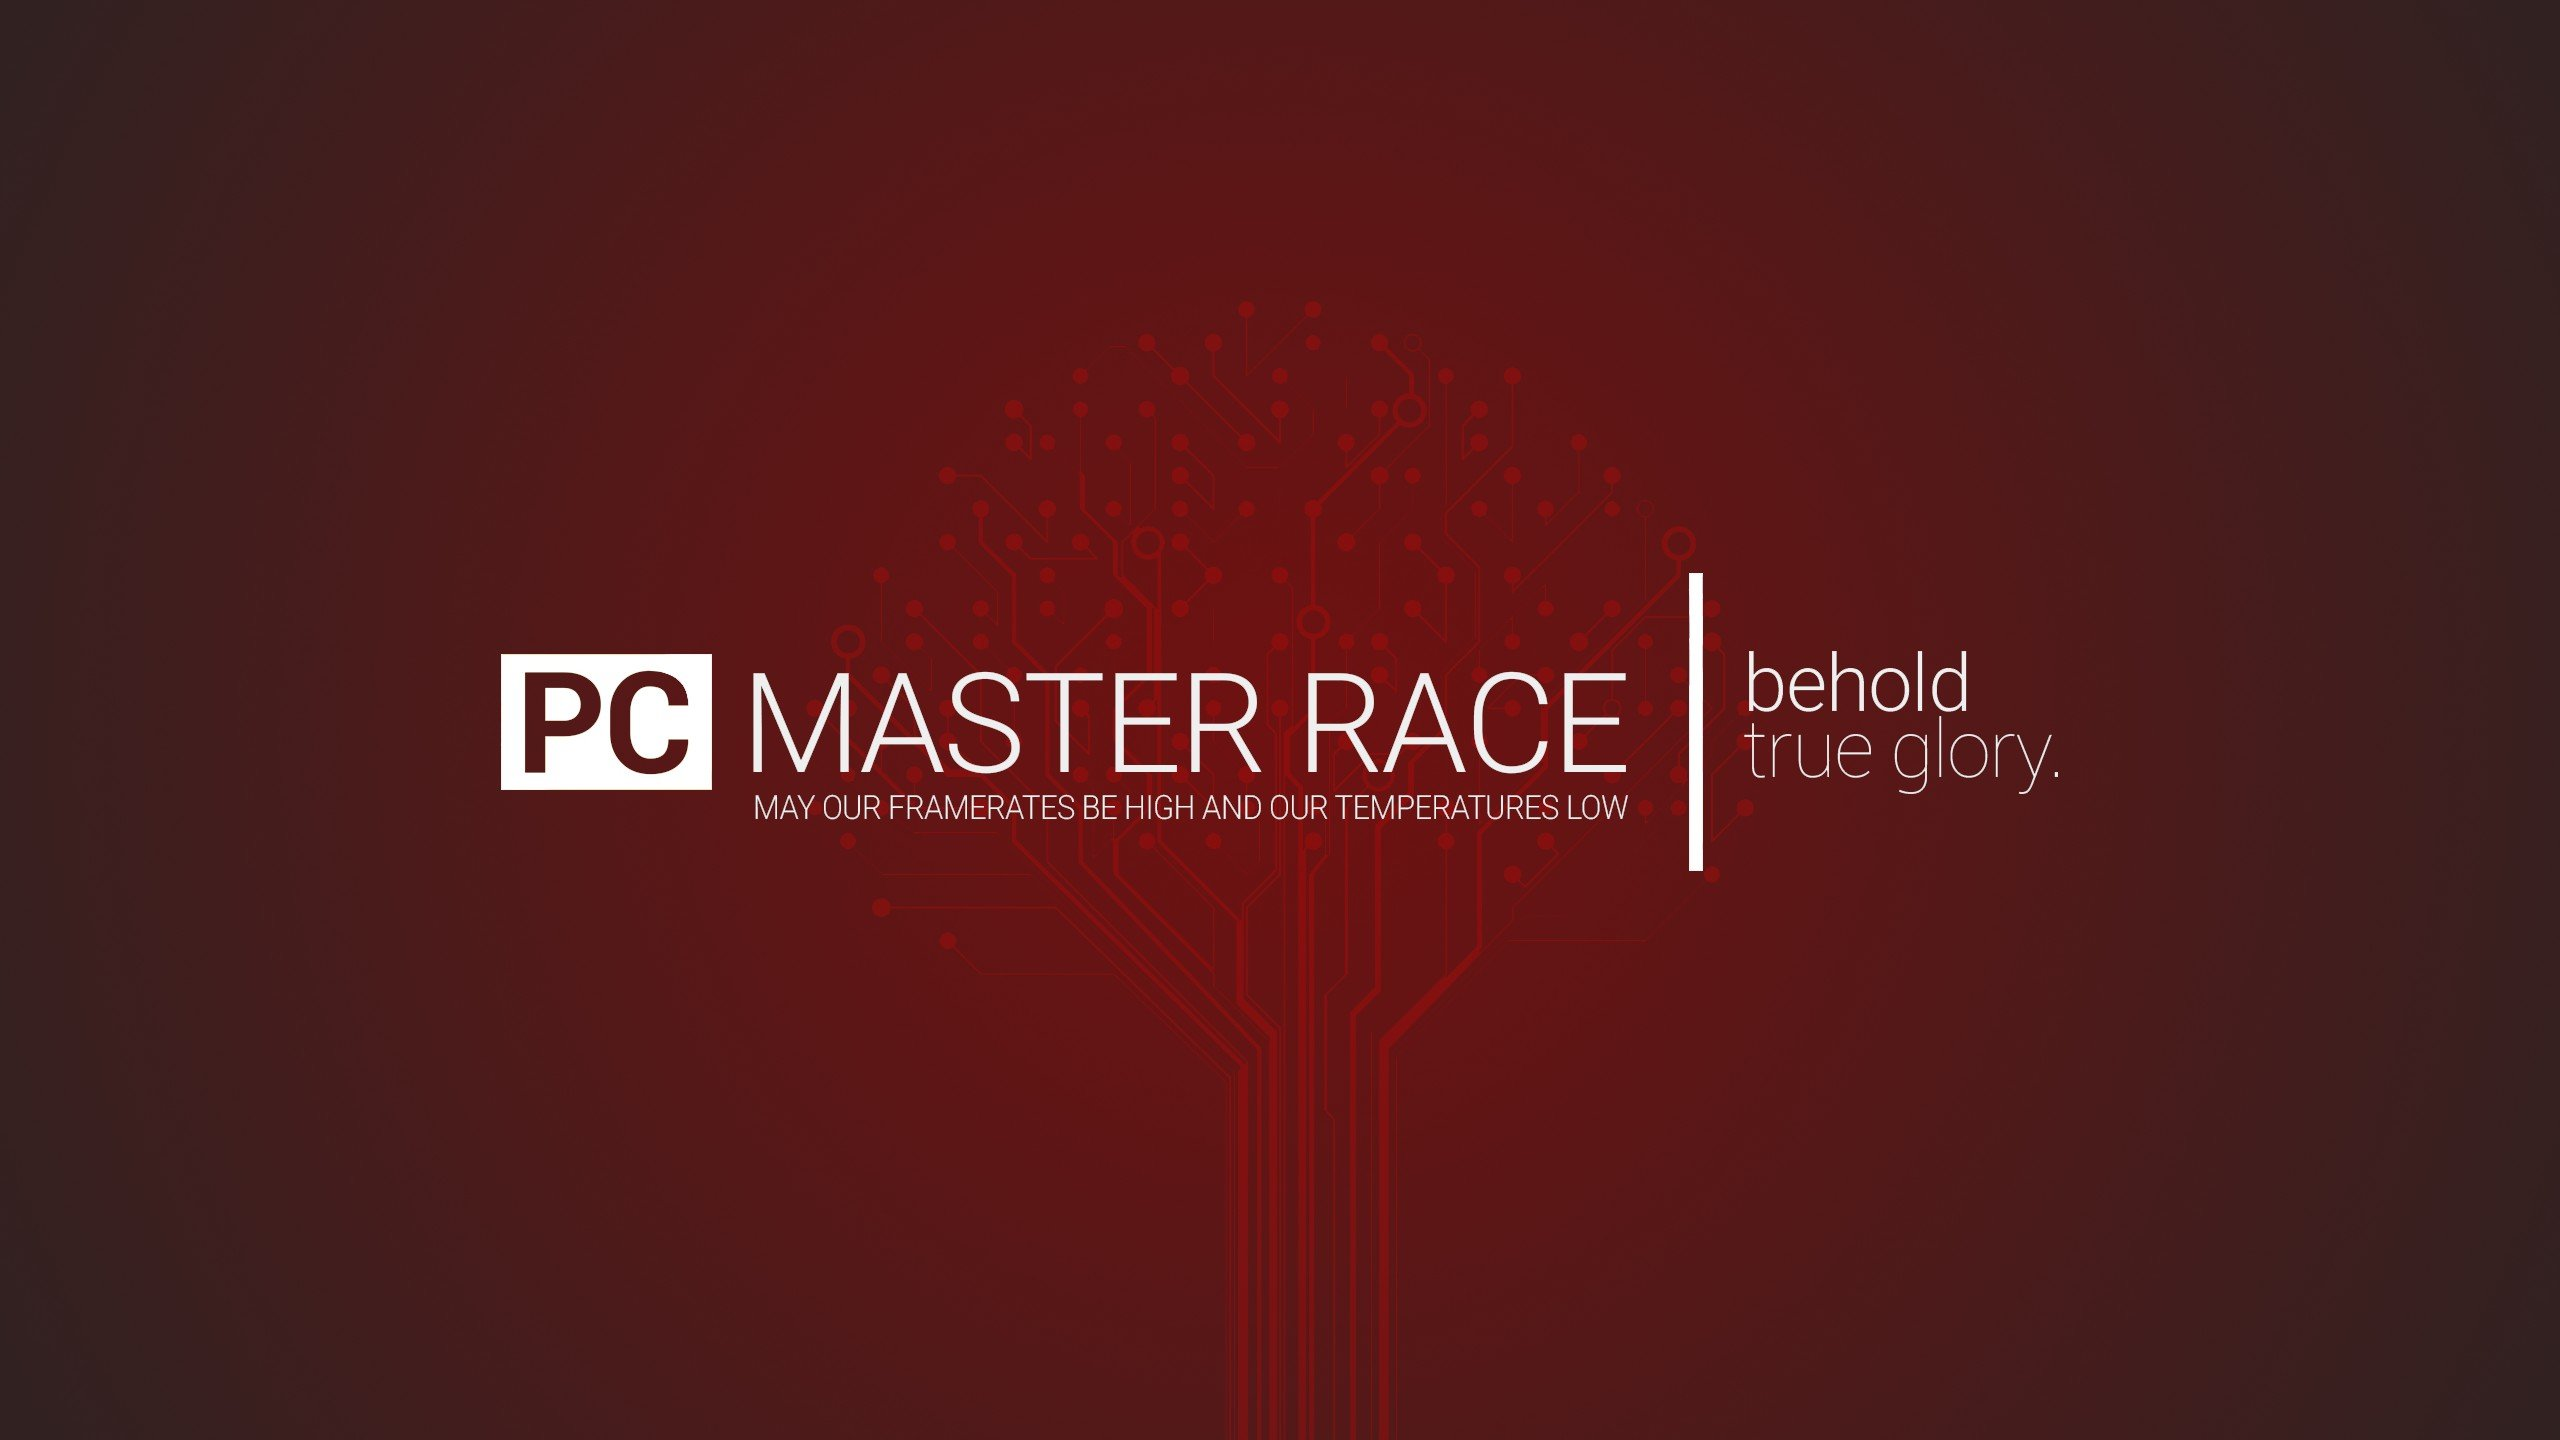 Pc Master Race Full Hd Wallpaper And Background Image: PC Master Race, Video Games HD Wallpapers / Desktop And